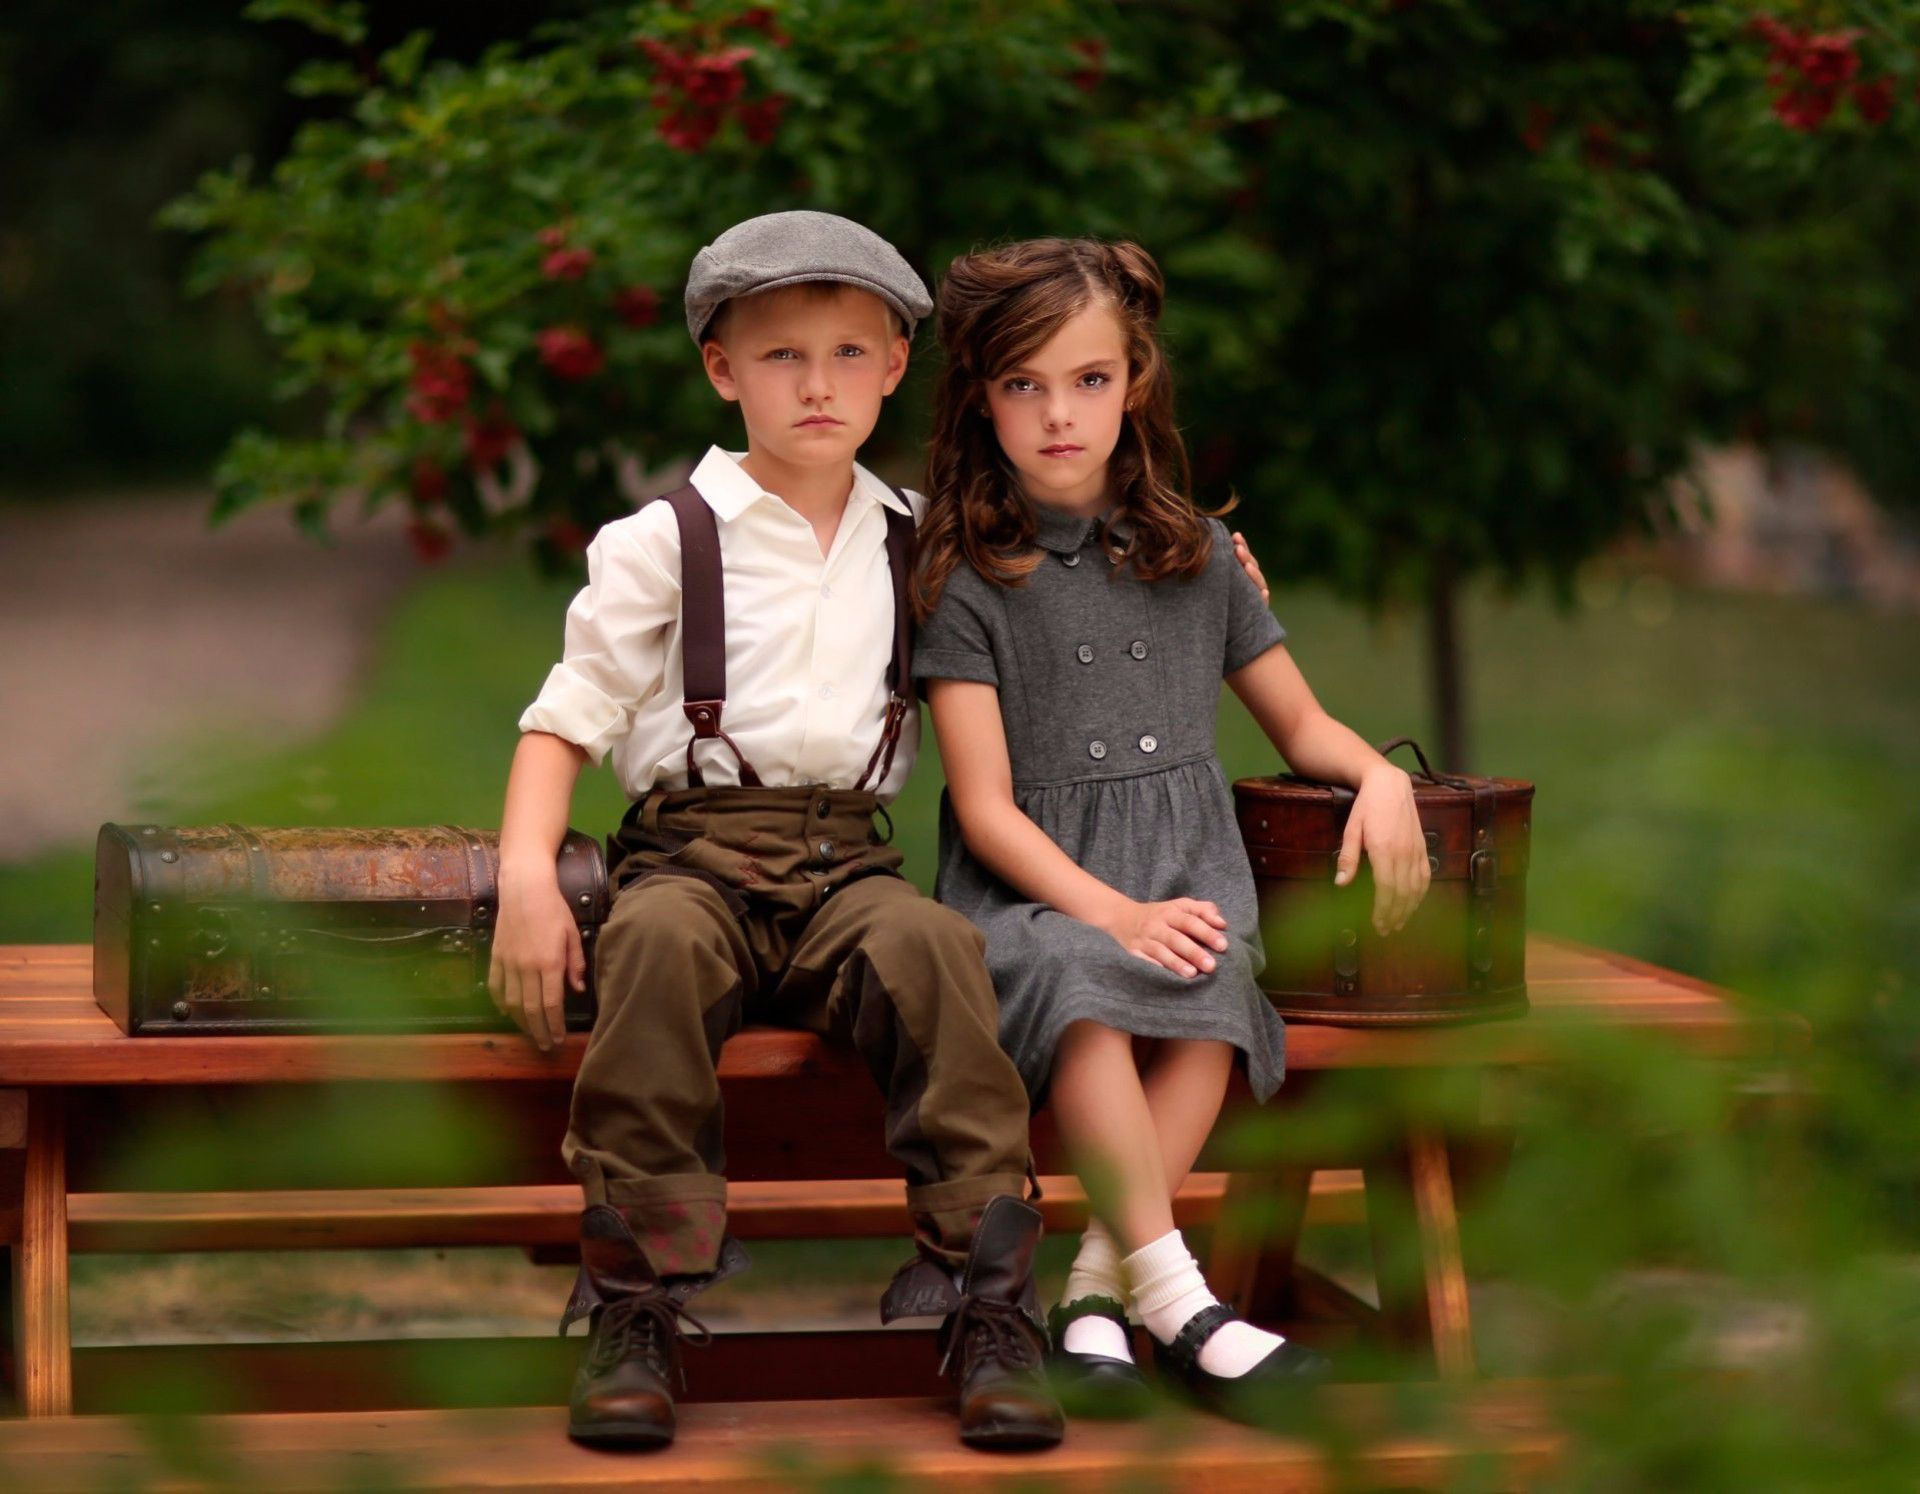 Boy And Girl Pictures